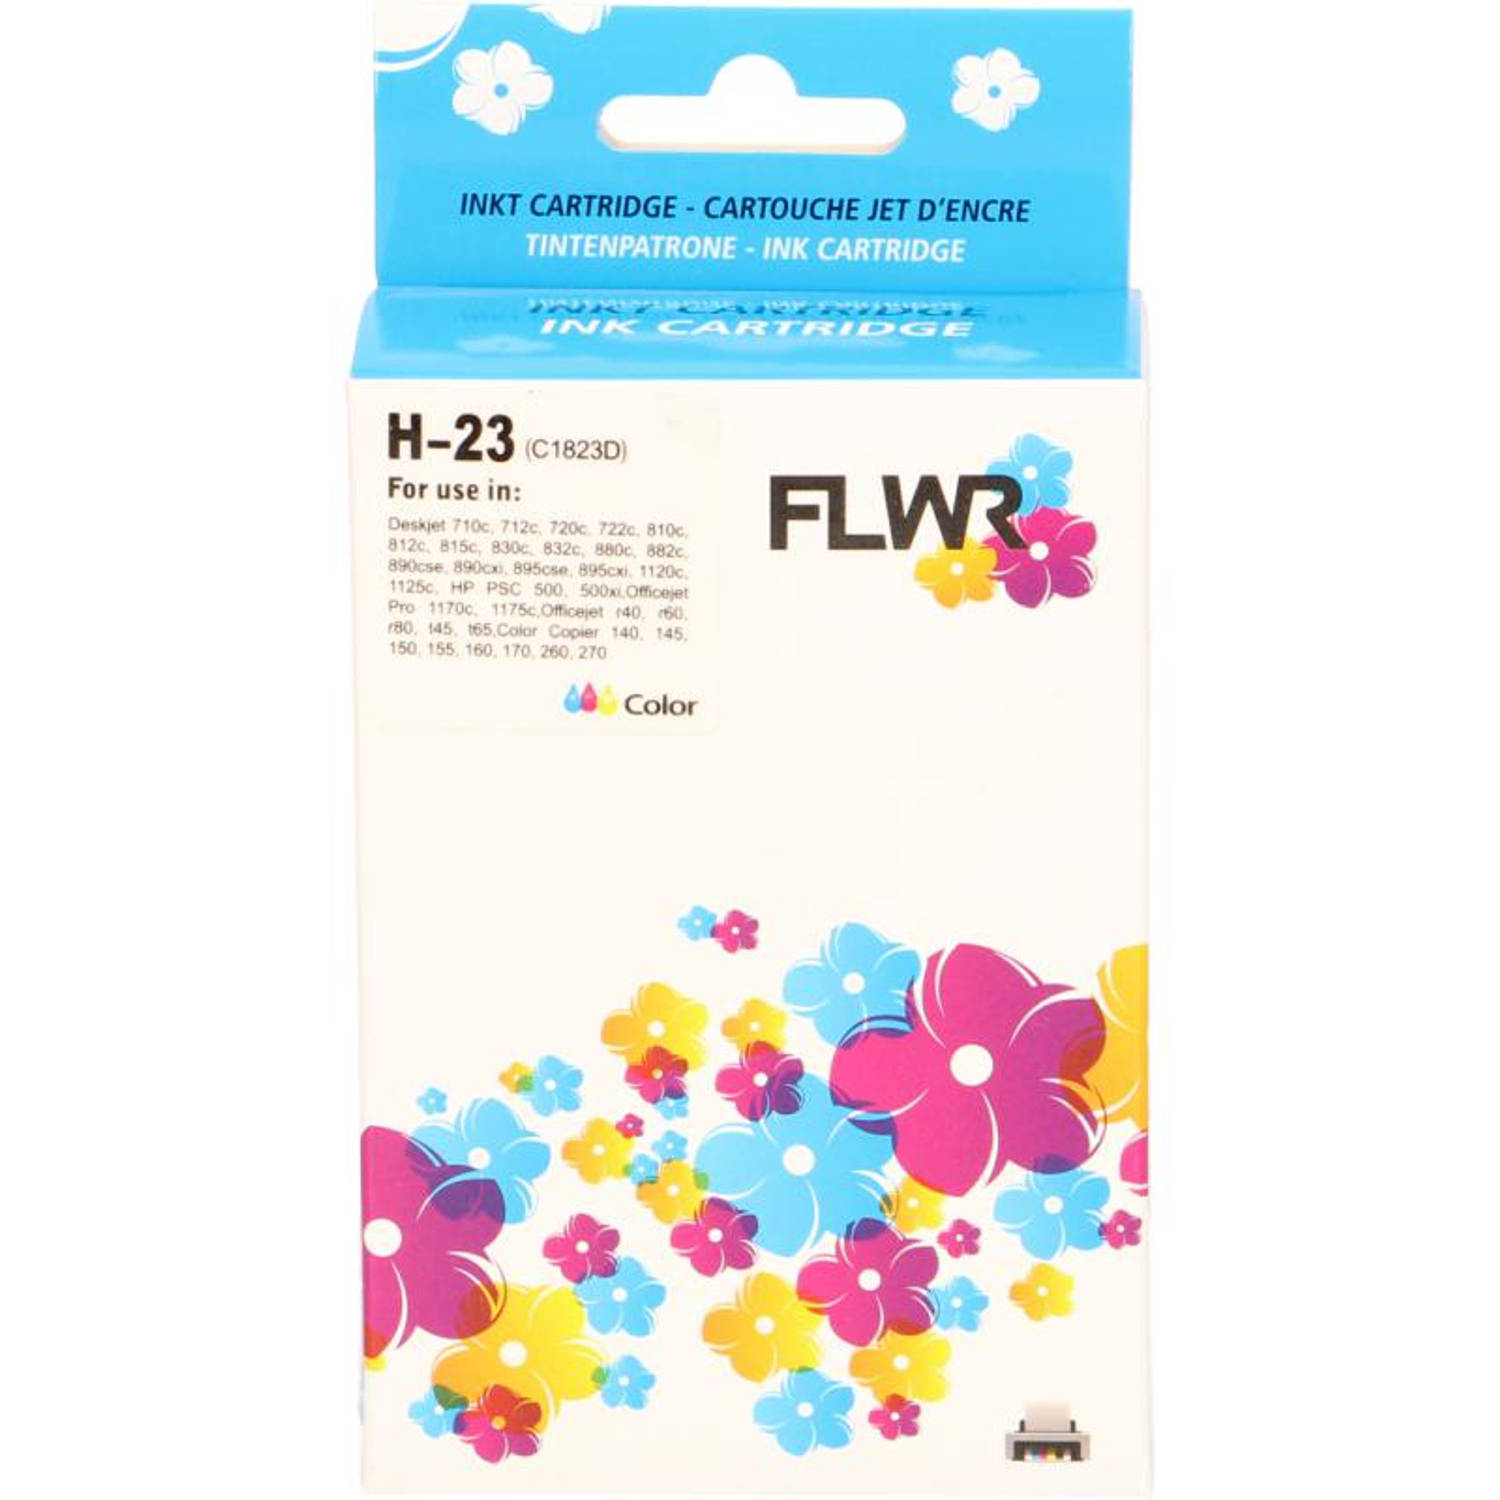 FLWR HP 23 kleur Cartridge